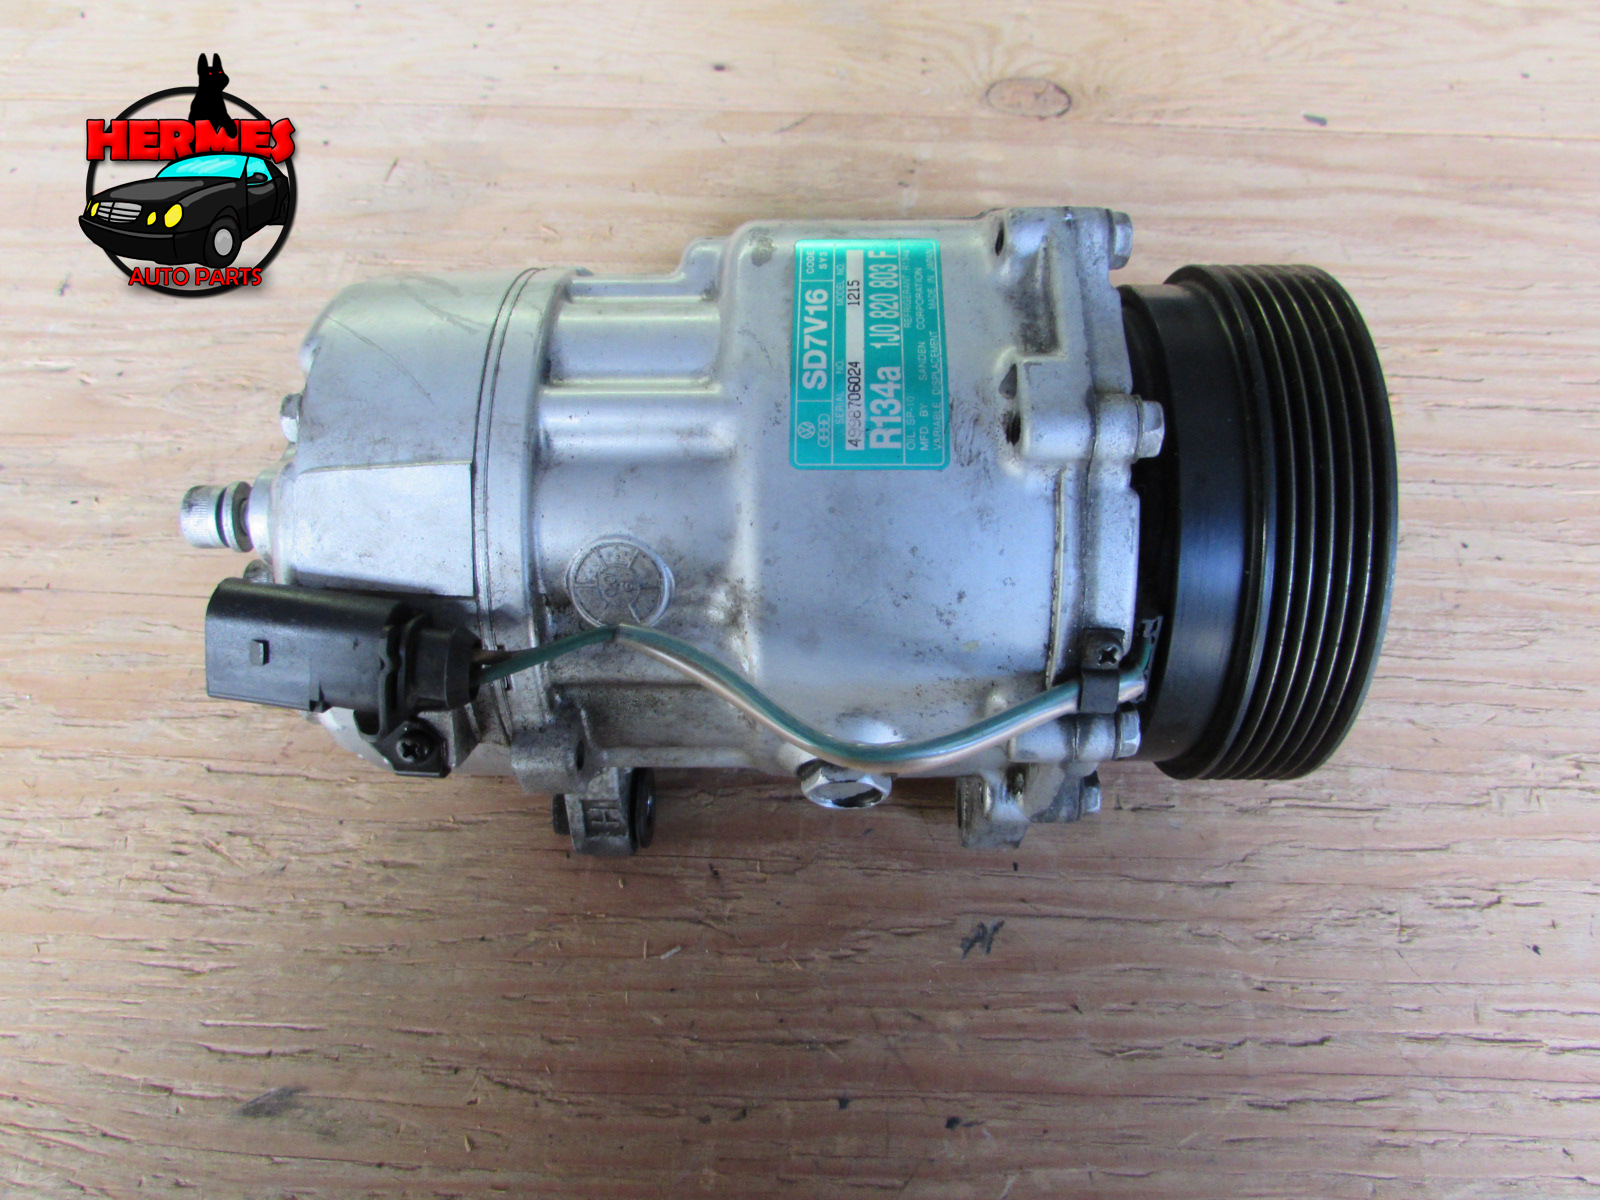 audi tt mk1 8n ac air conditioning compressor 1j0820803f hermes rh hermesautoparts com Audi TT Service Manual 2011 Audi TT Owner's Manual